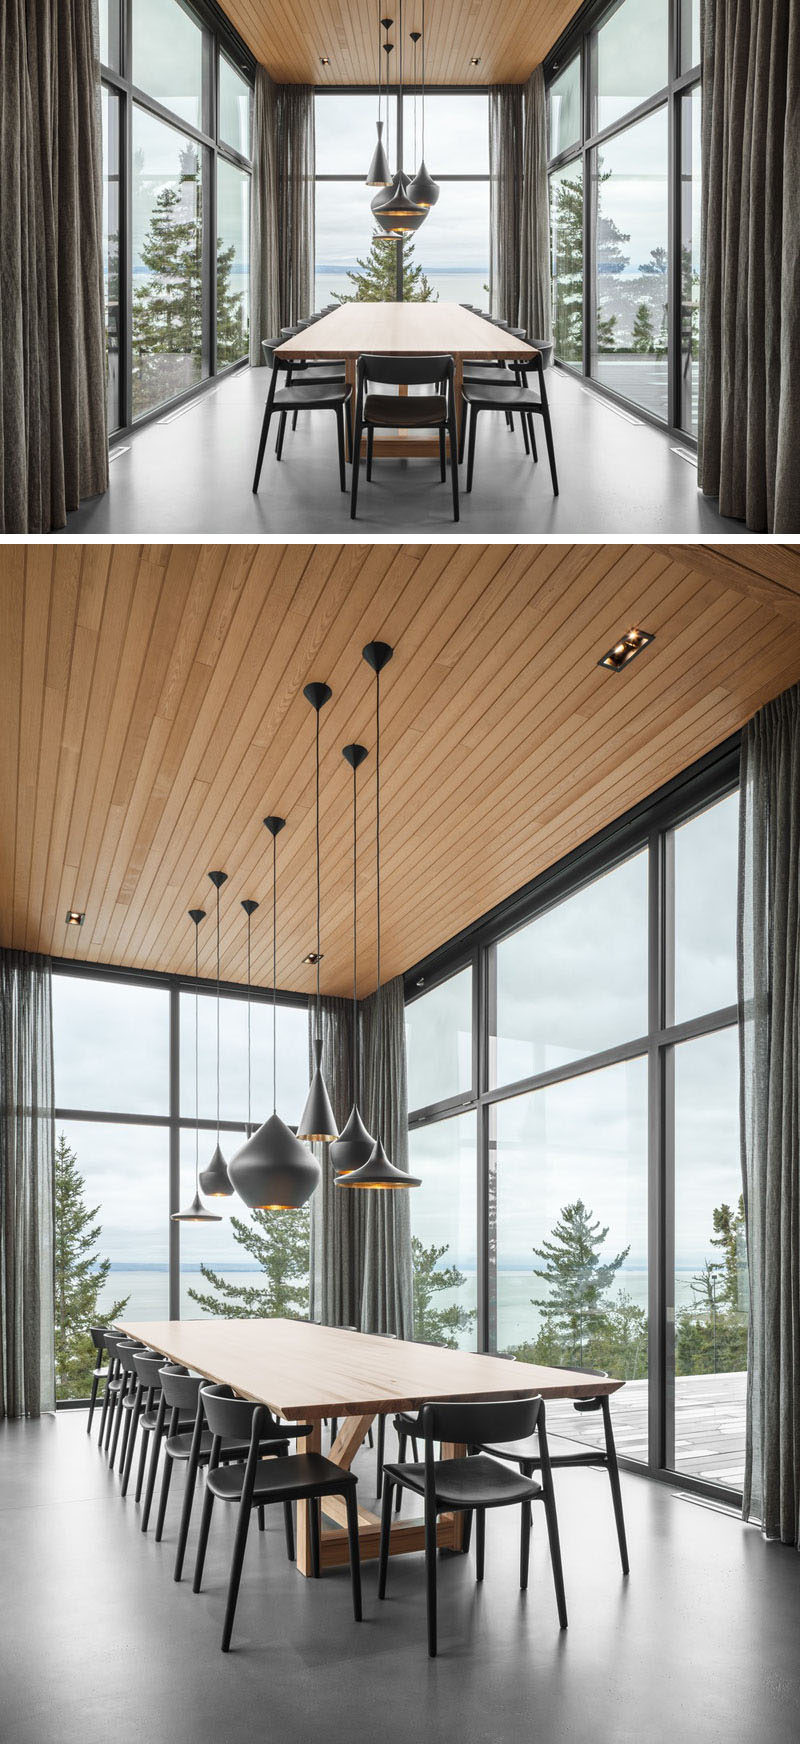 This modern dining room has high ceilings, is surrounded by walls of windows on three sides, and extends away from the house. #ModernDiningRoom #DiningRoom #Windows #WoodCeiling